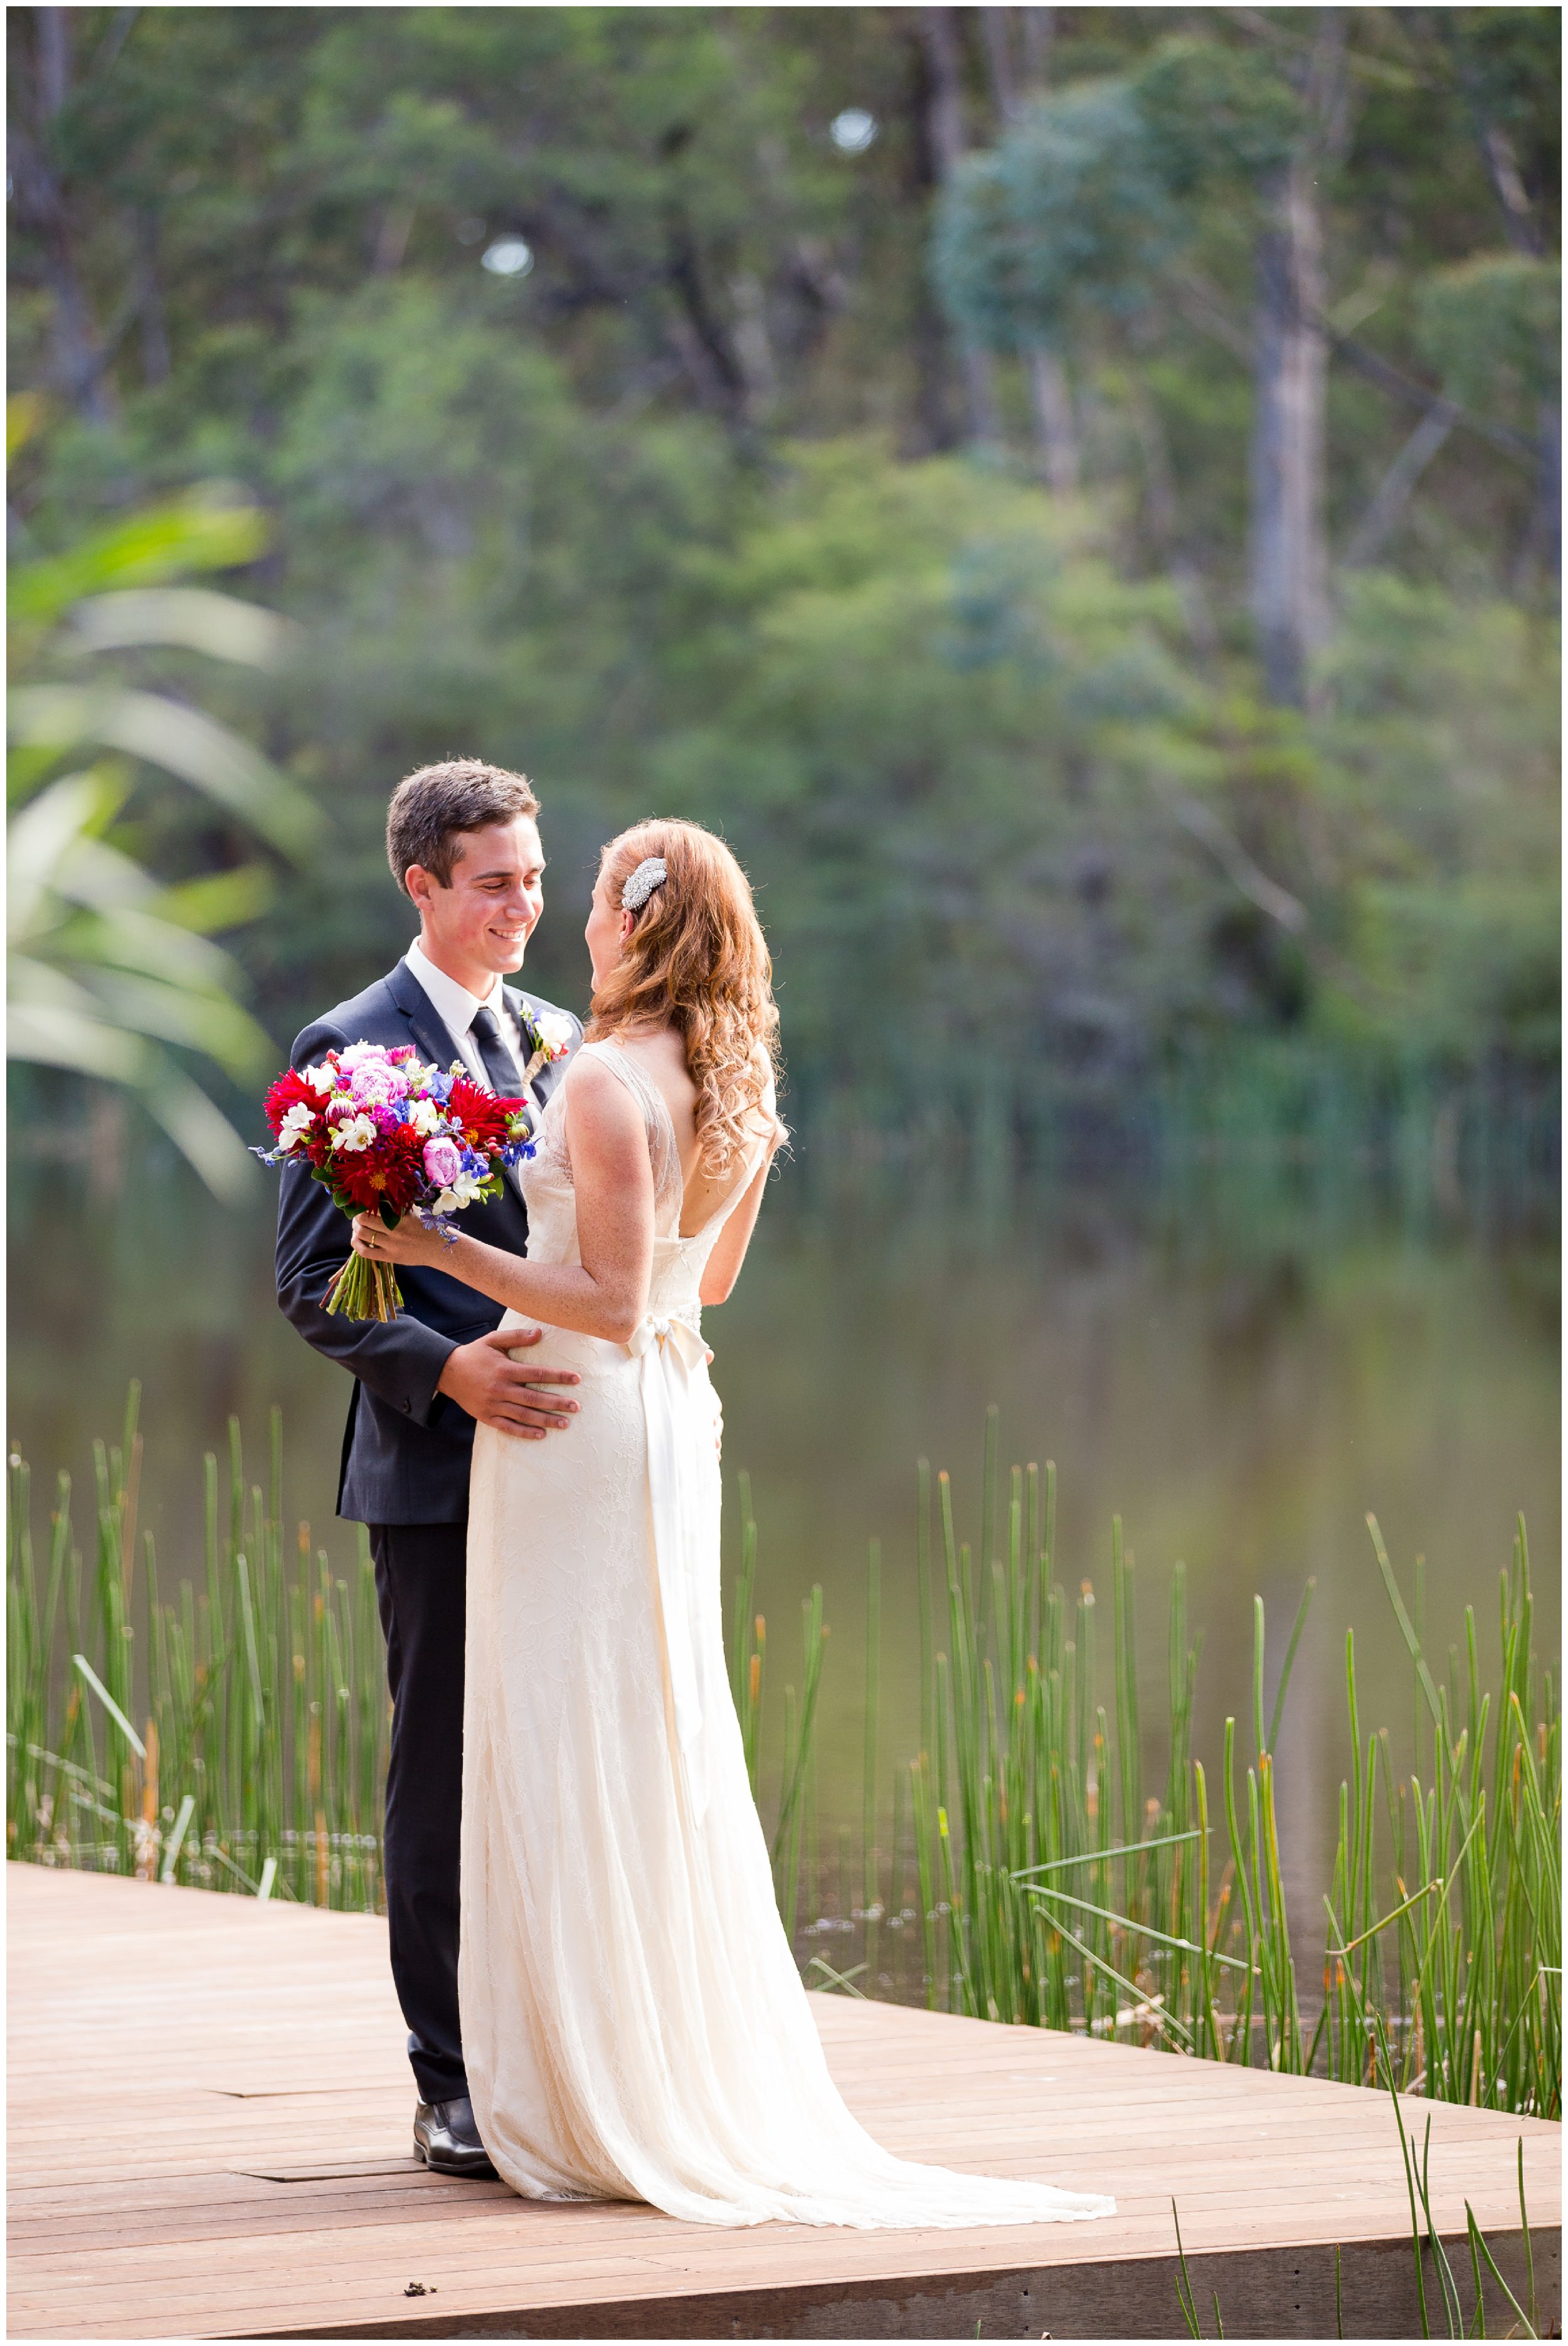 Dubbo Wedding Photographer Blue Mountains Wedding_0130.jpg